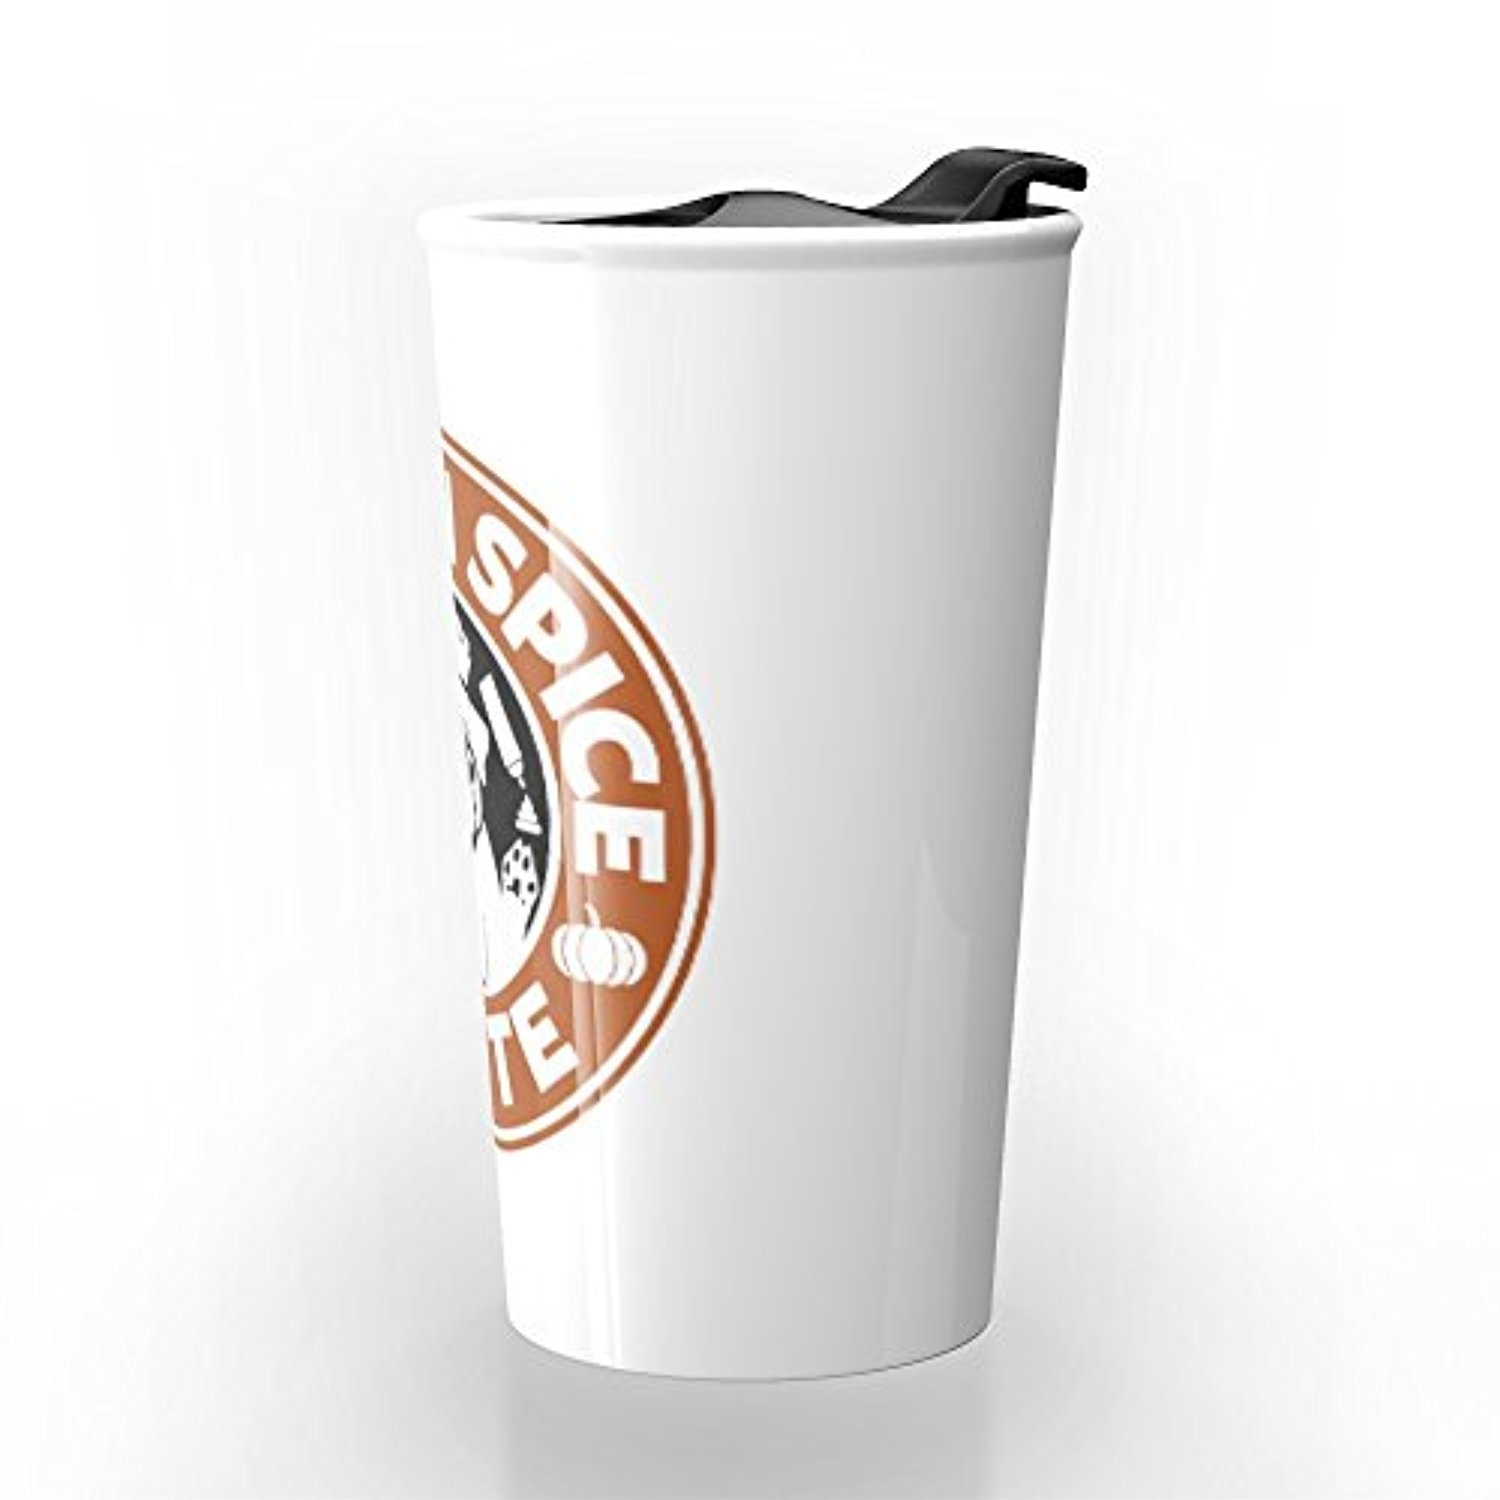 ◎送料込み◎ Society6 Pugkin Spice Latte Travel Mug 12 oz